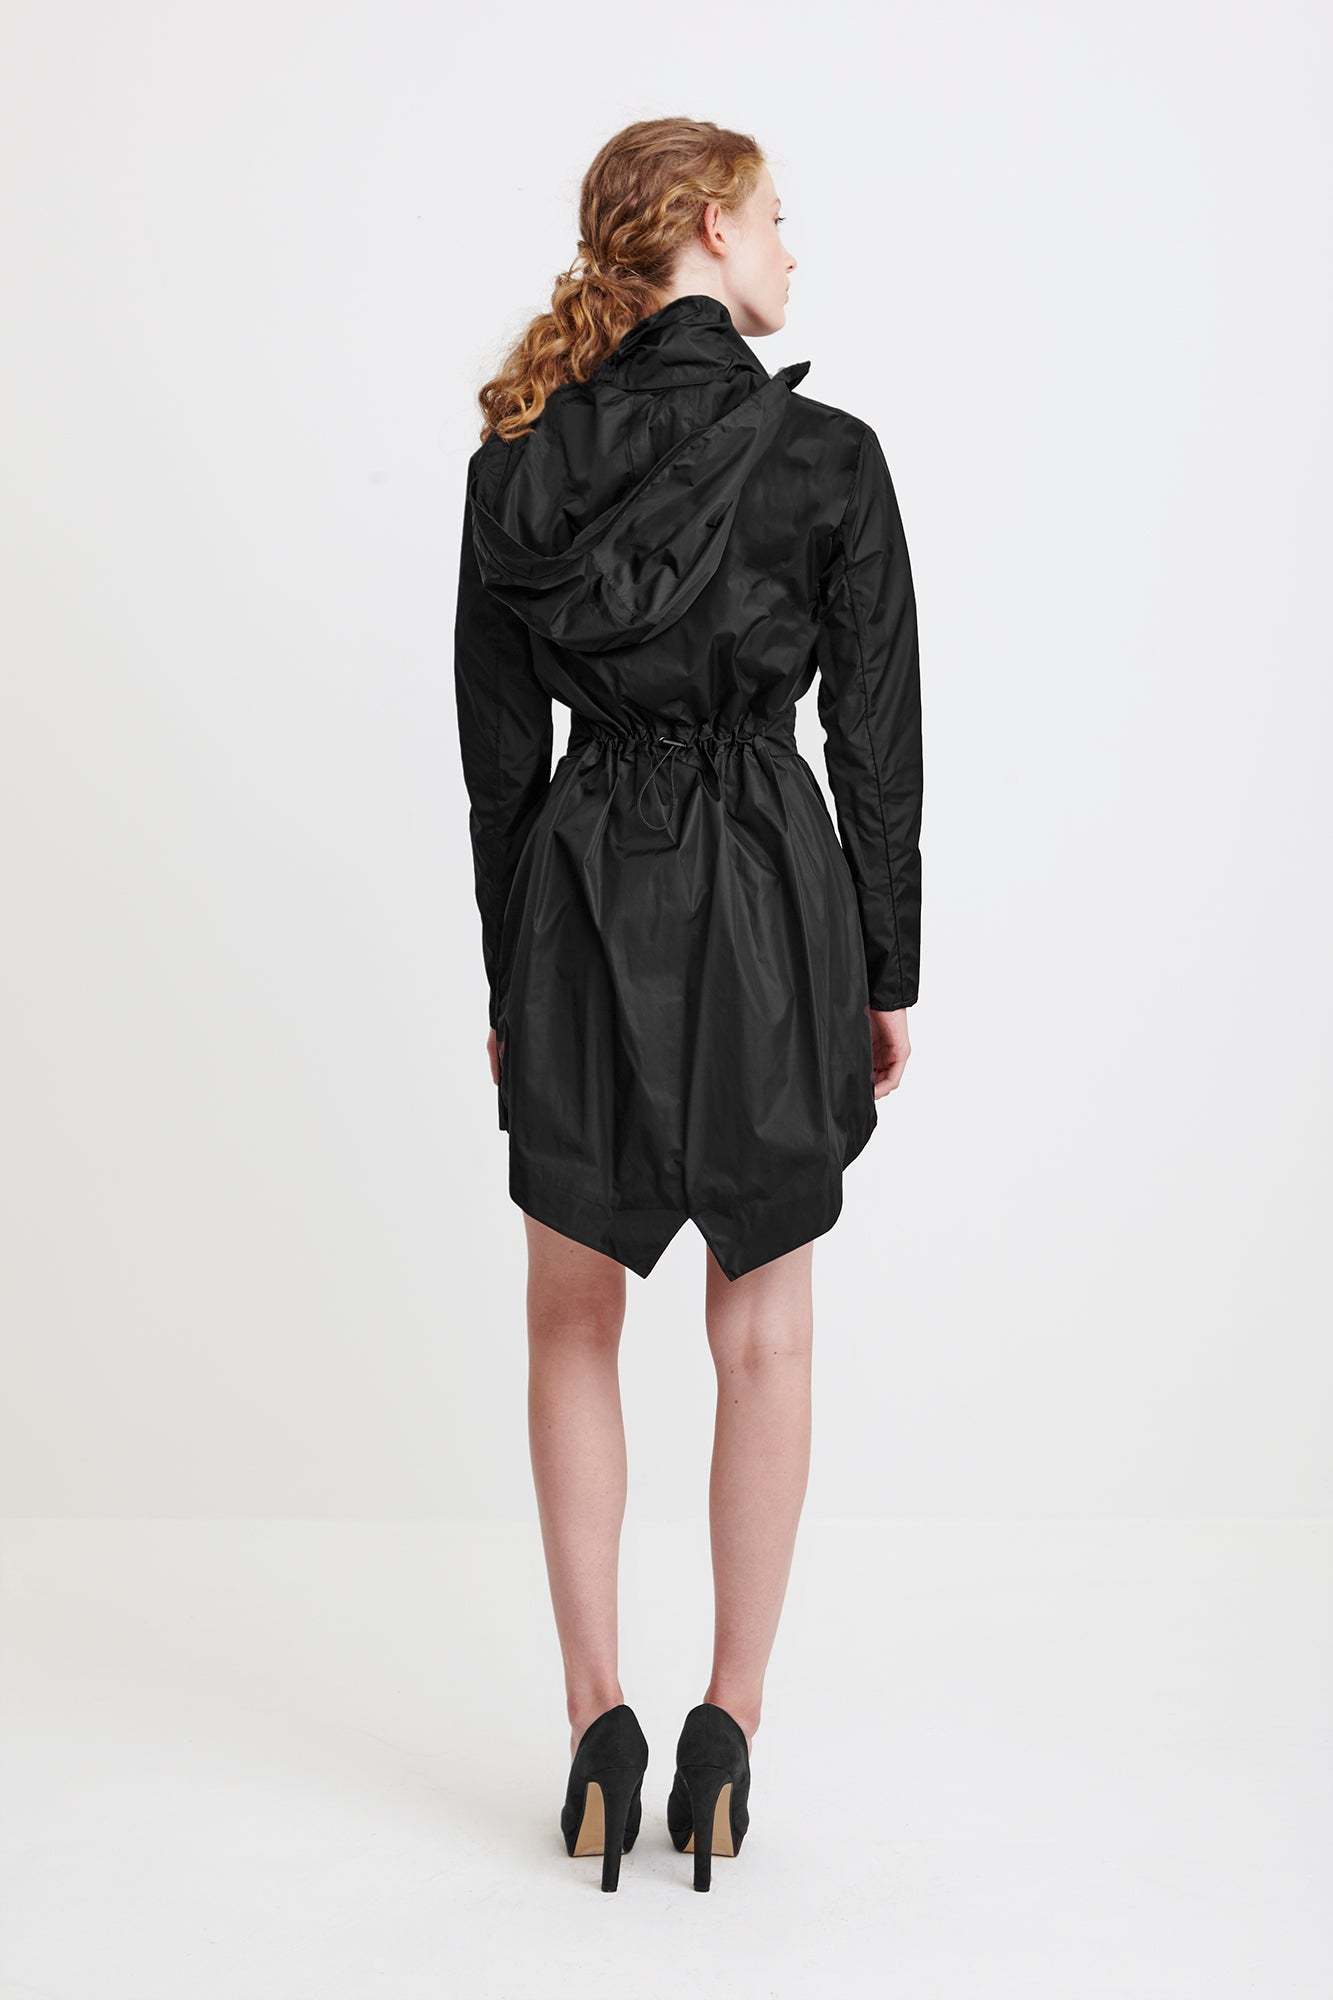 TAILORED TRENCH COAT - black raincoat for women